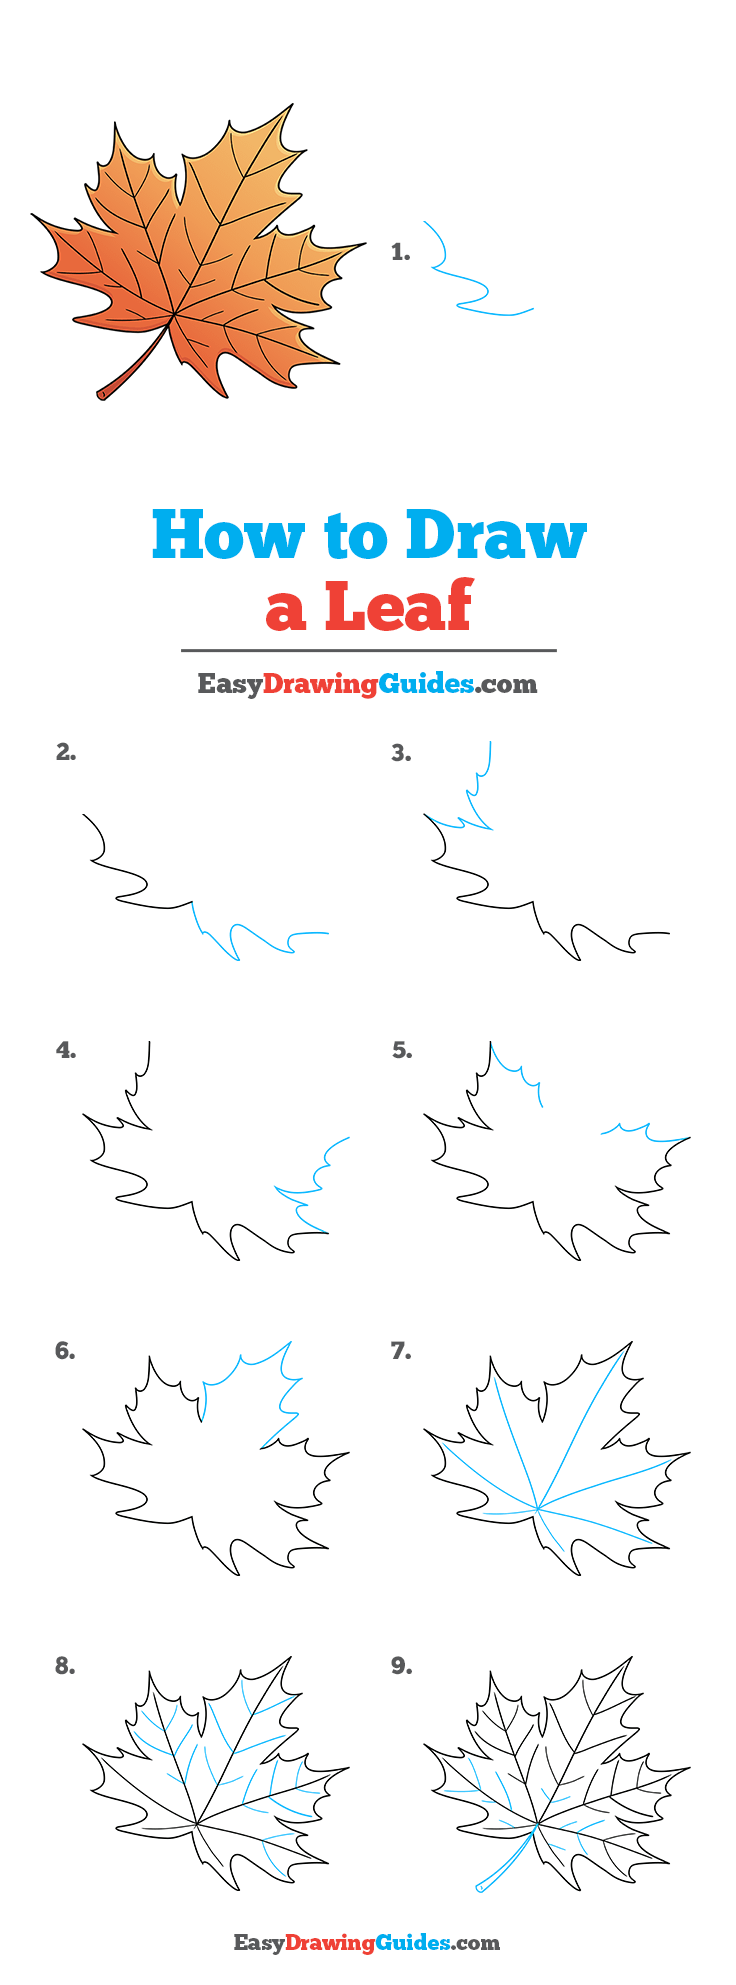 how to draw a leaf step by step tutorial image